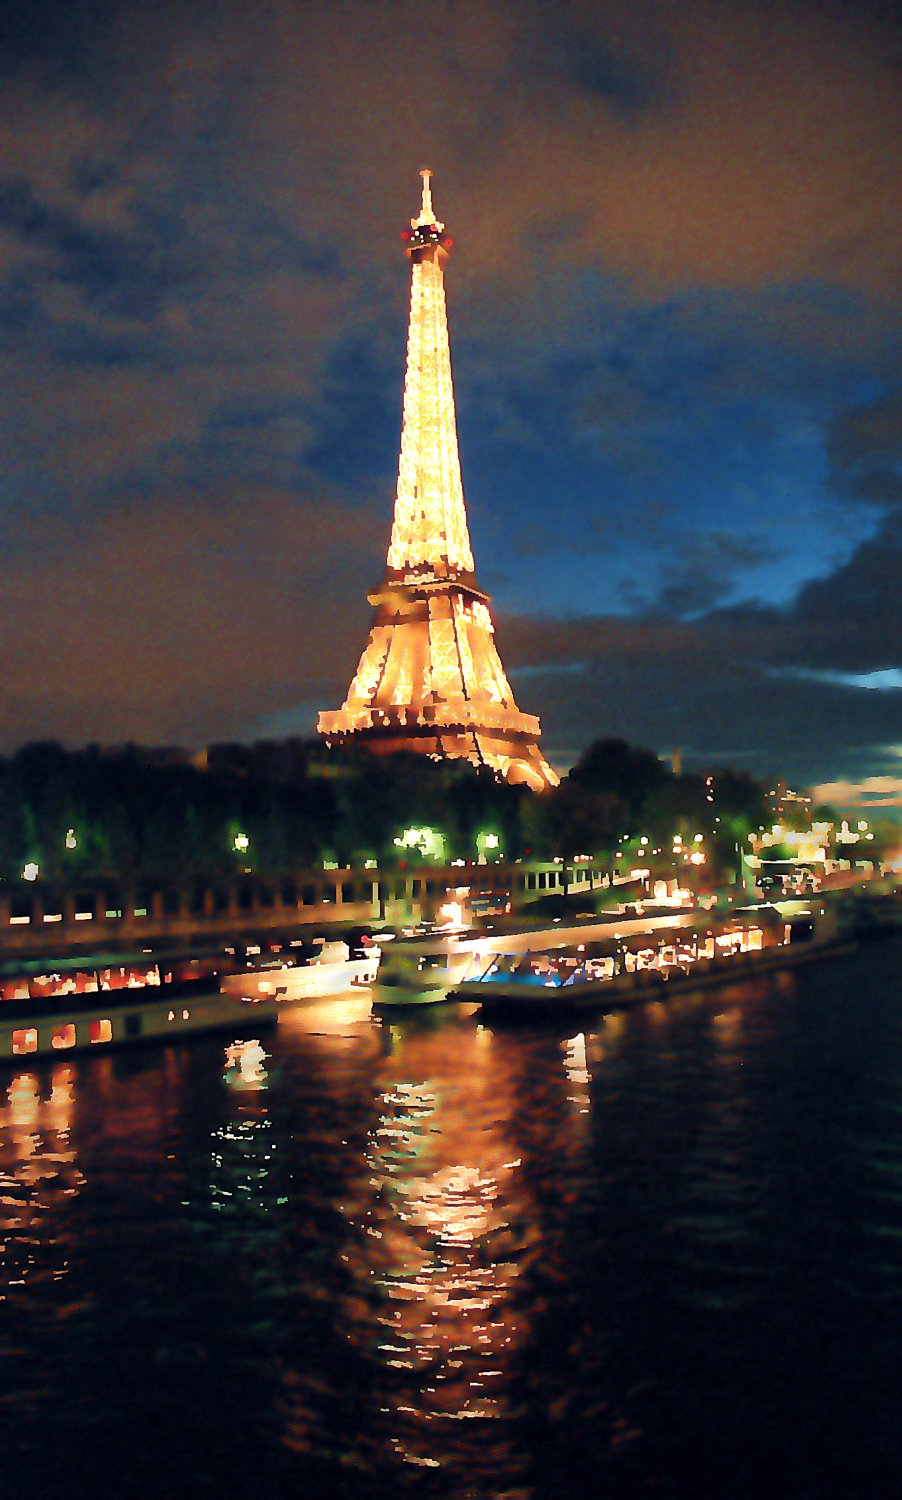 Eiffel tower  at night view of the Seine Paris as night falls reflection of the Eiffel Tower in  river Seine - <center>Night on the Seine - Techno-Impressionist Museum - Techno-Impressionism - art - beautiful - photo photography picture - by Tony Karp